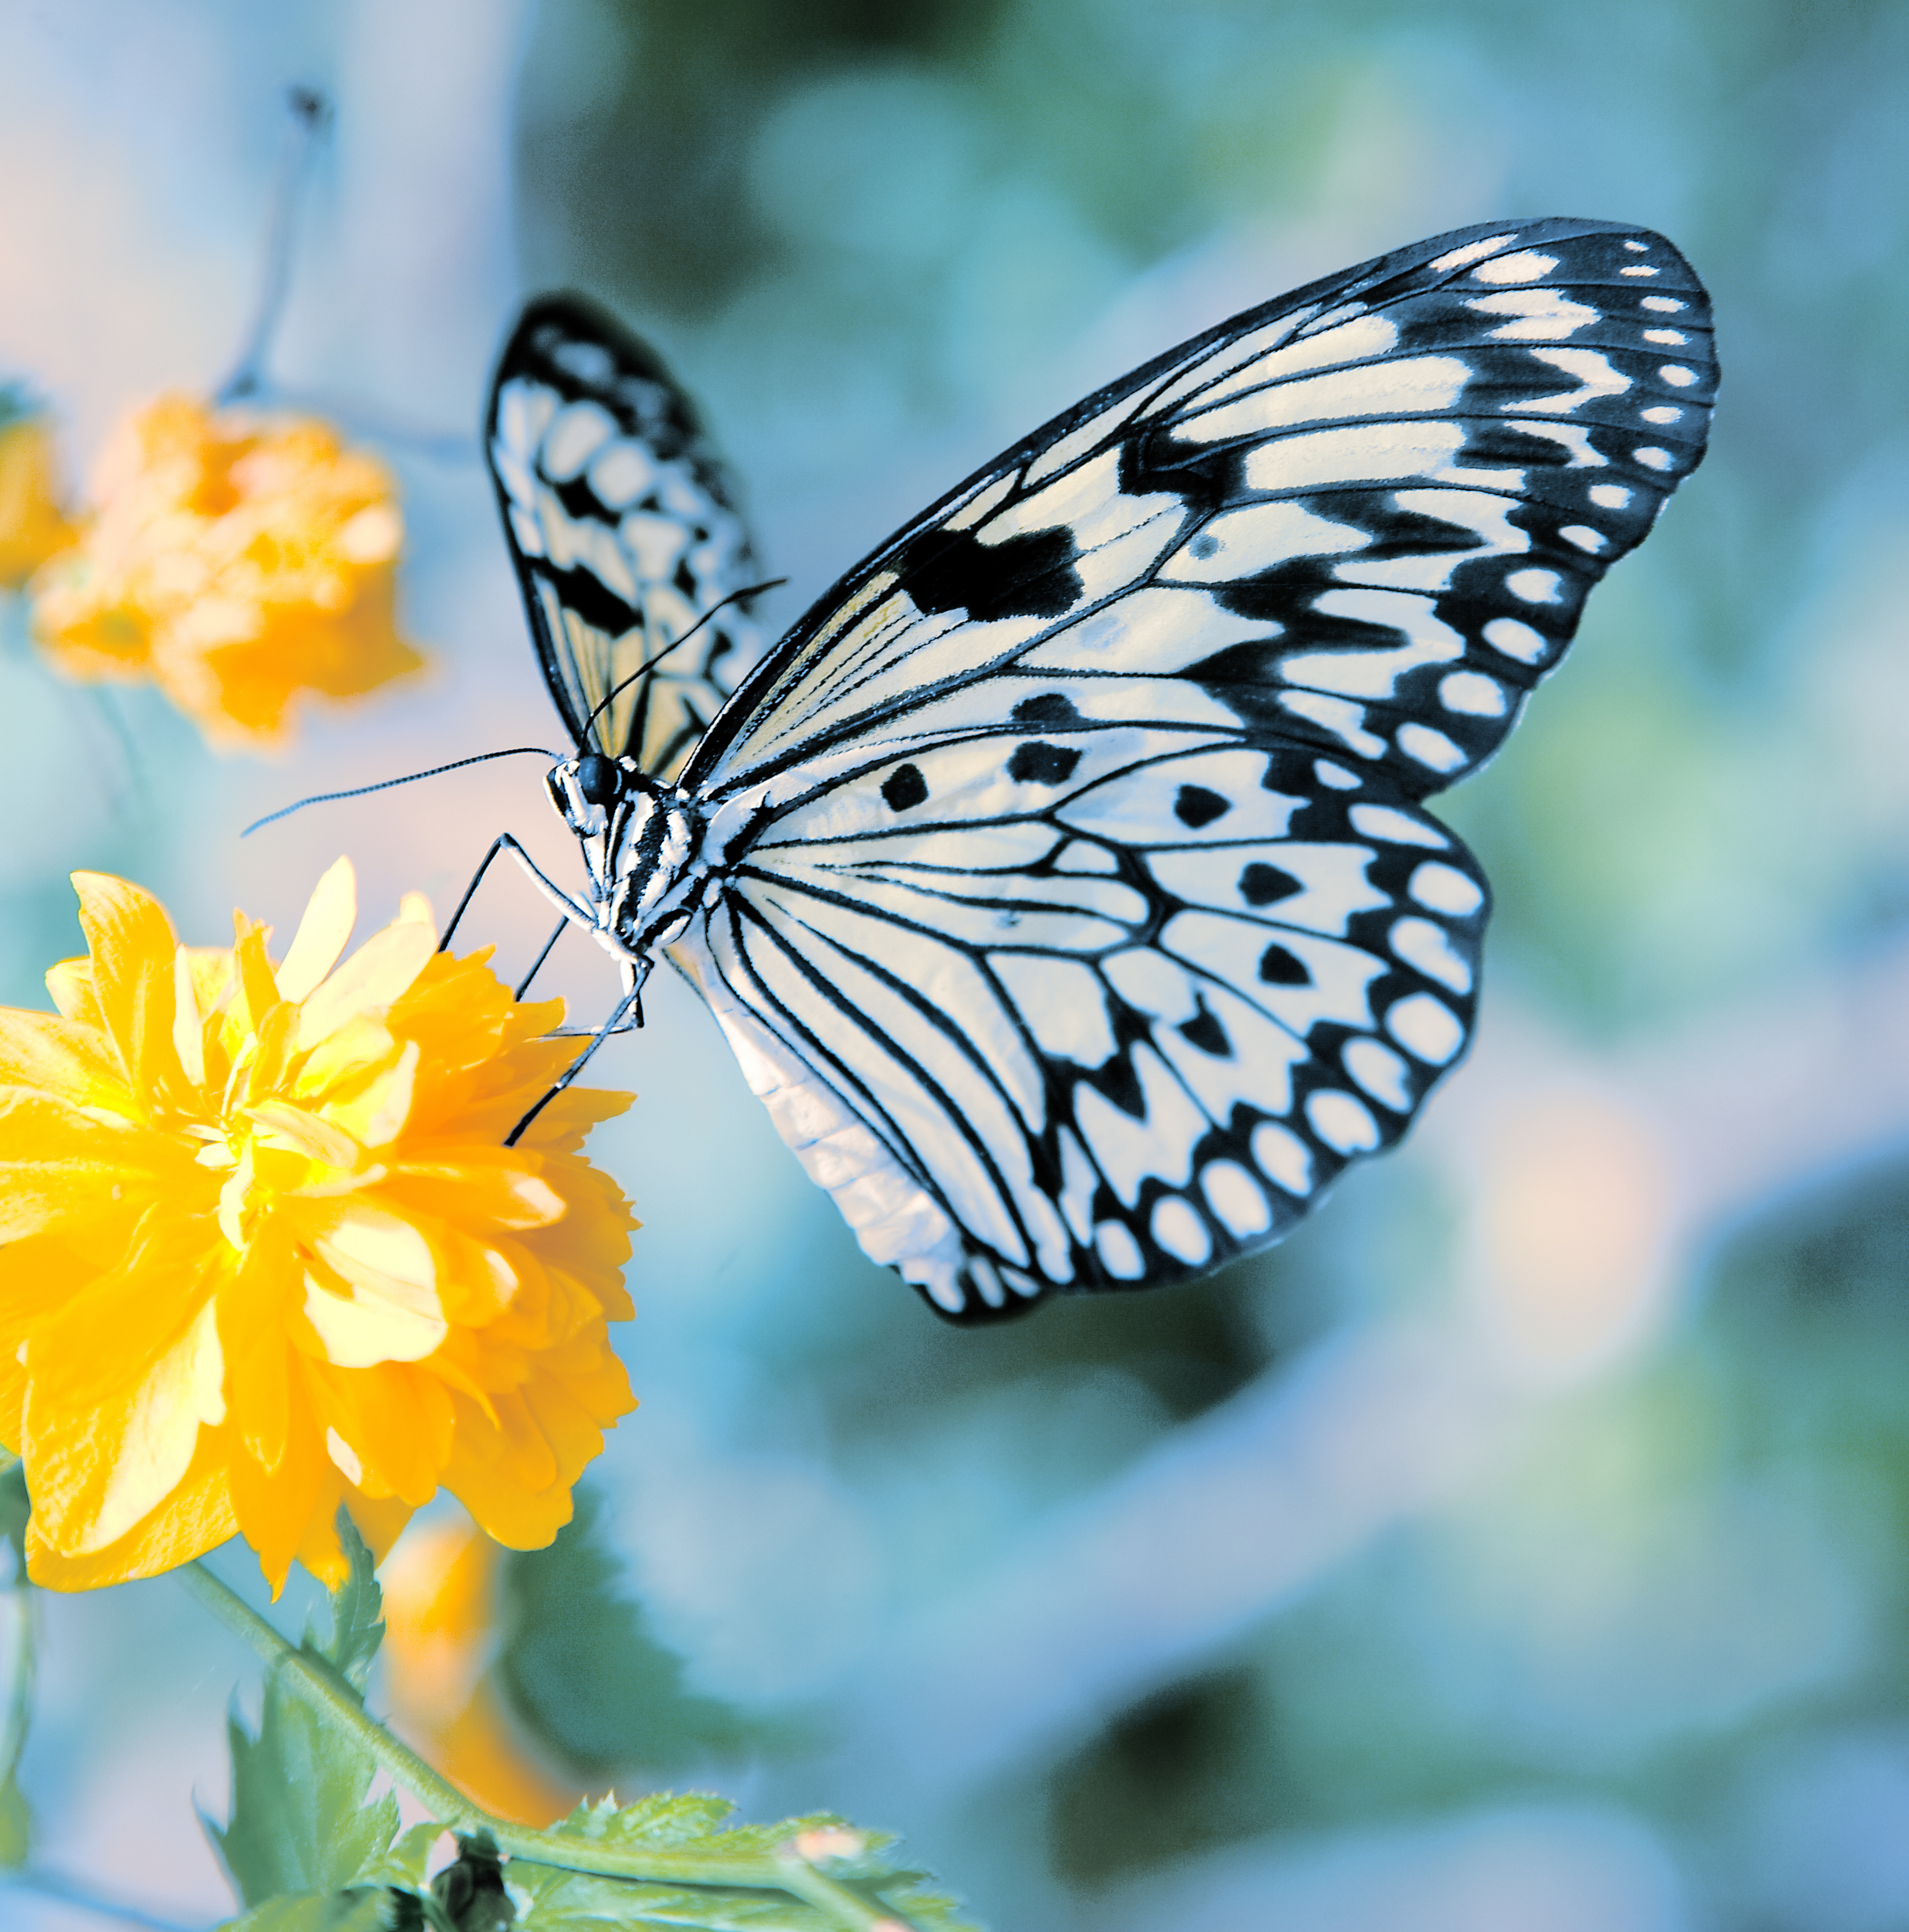 butterfly_flower_02_hd_pictures